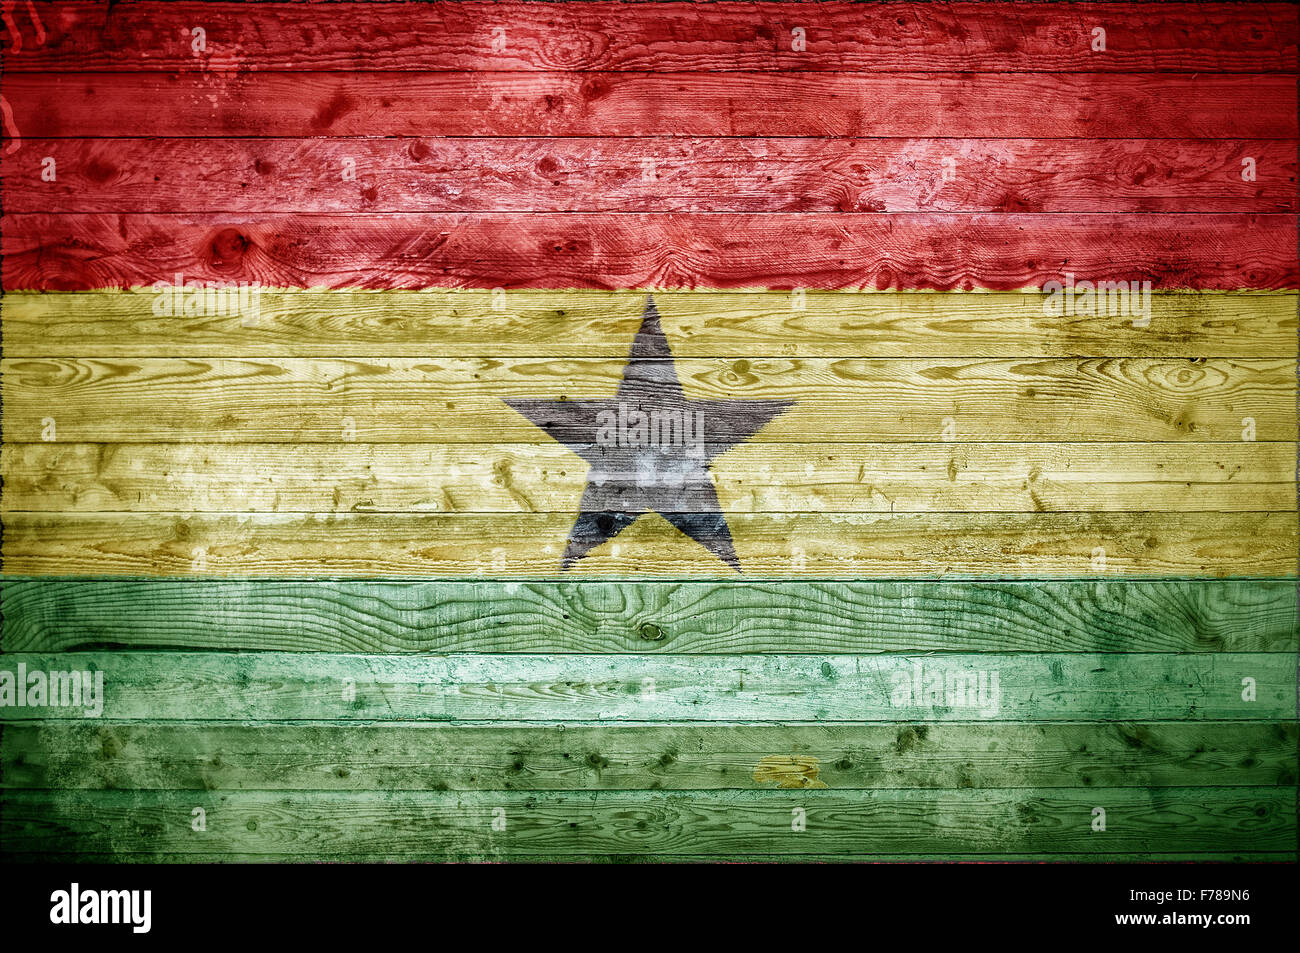 A vignetted background image of the flag of Ghana painted onto wooden boards of a wall or floor. - Stock Image